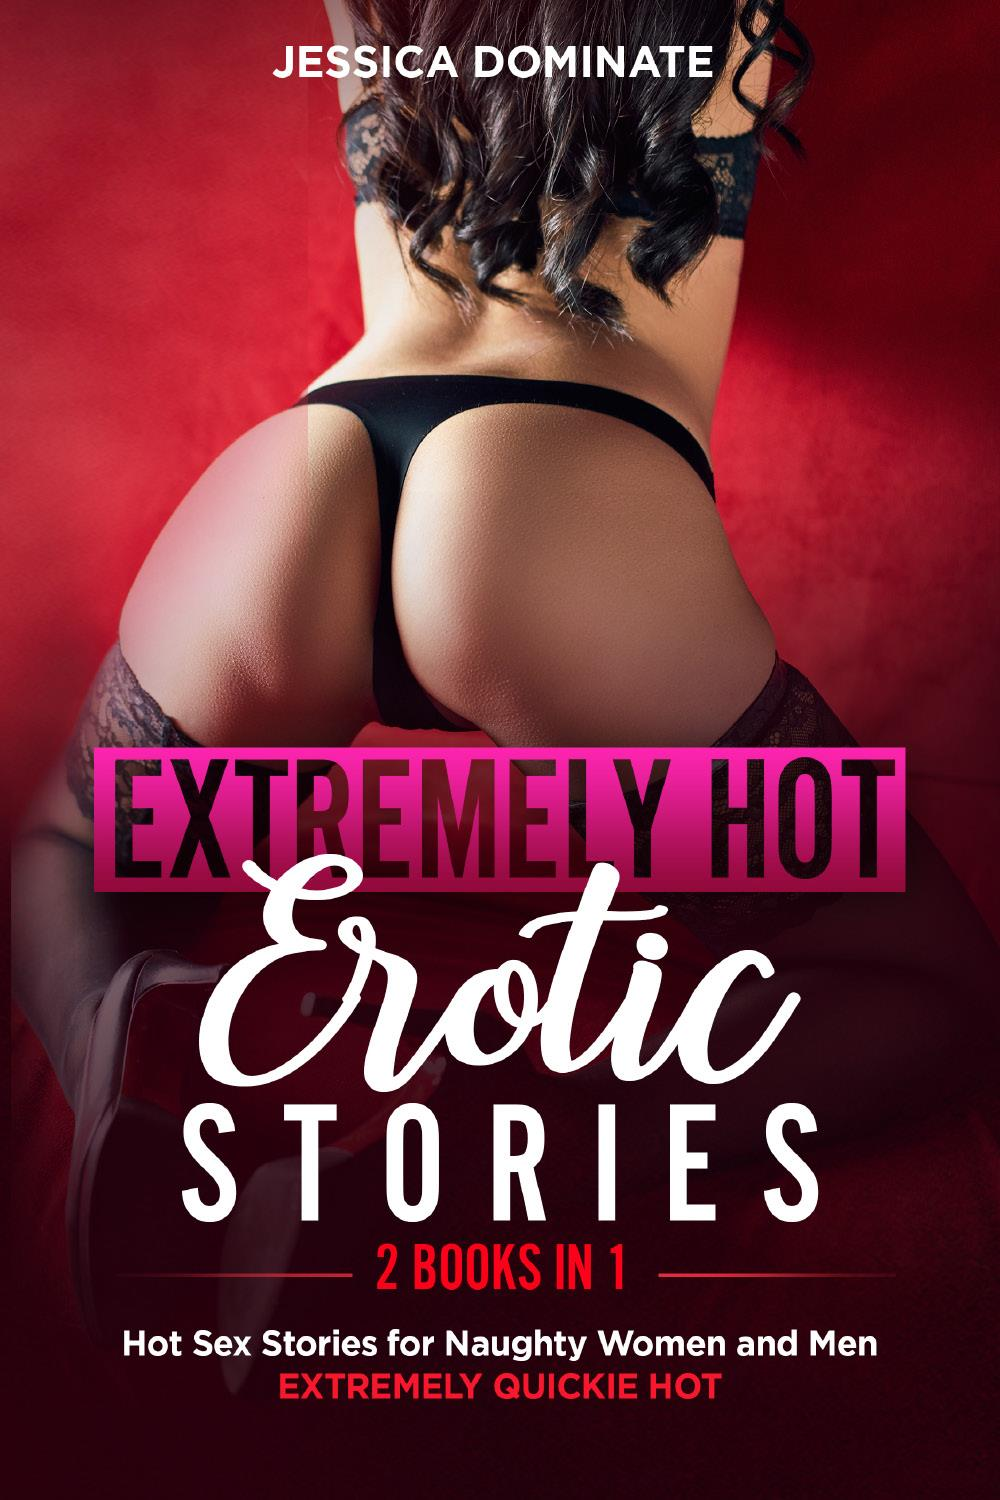 EXTREMELY HOT EROTIC STORIES (2 Books in 1). Hot Sex Stories for Naughty Women and Men. EXTREMELY QUICKIE HOT